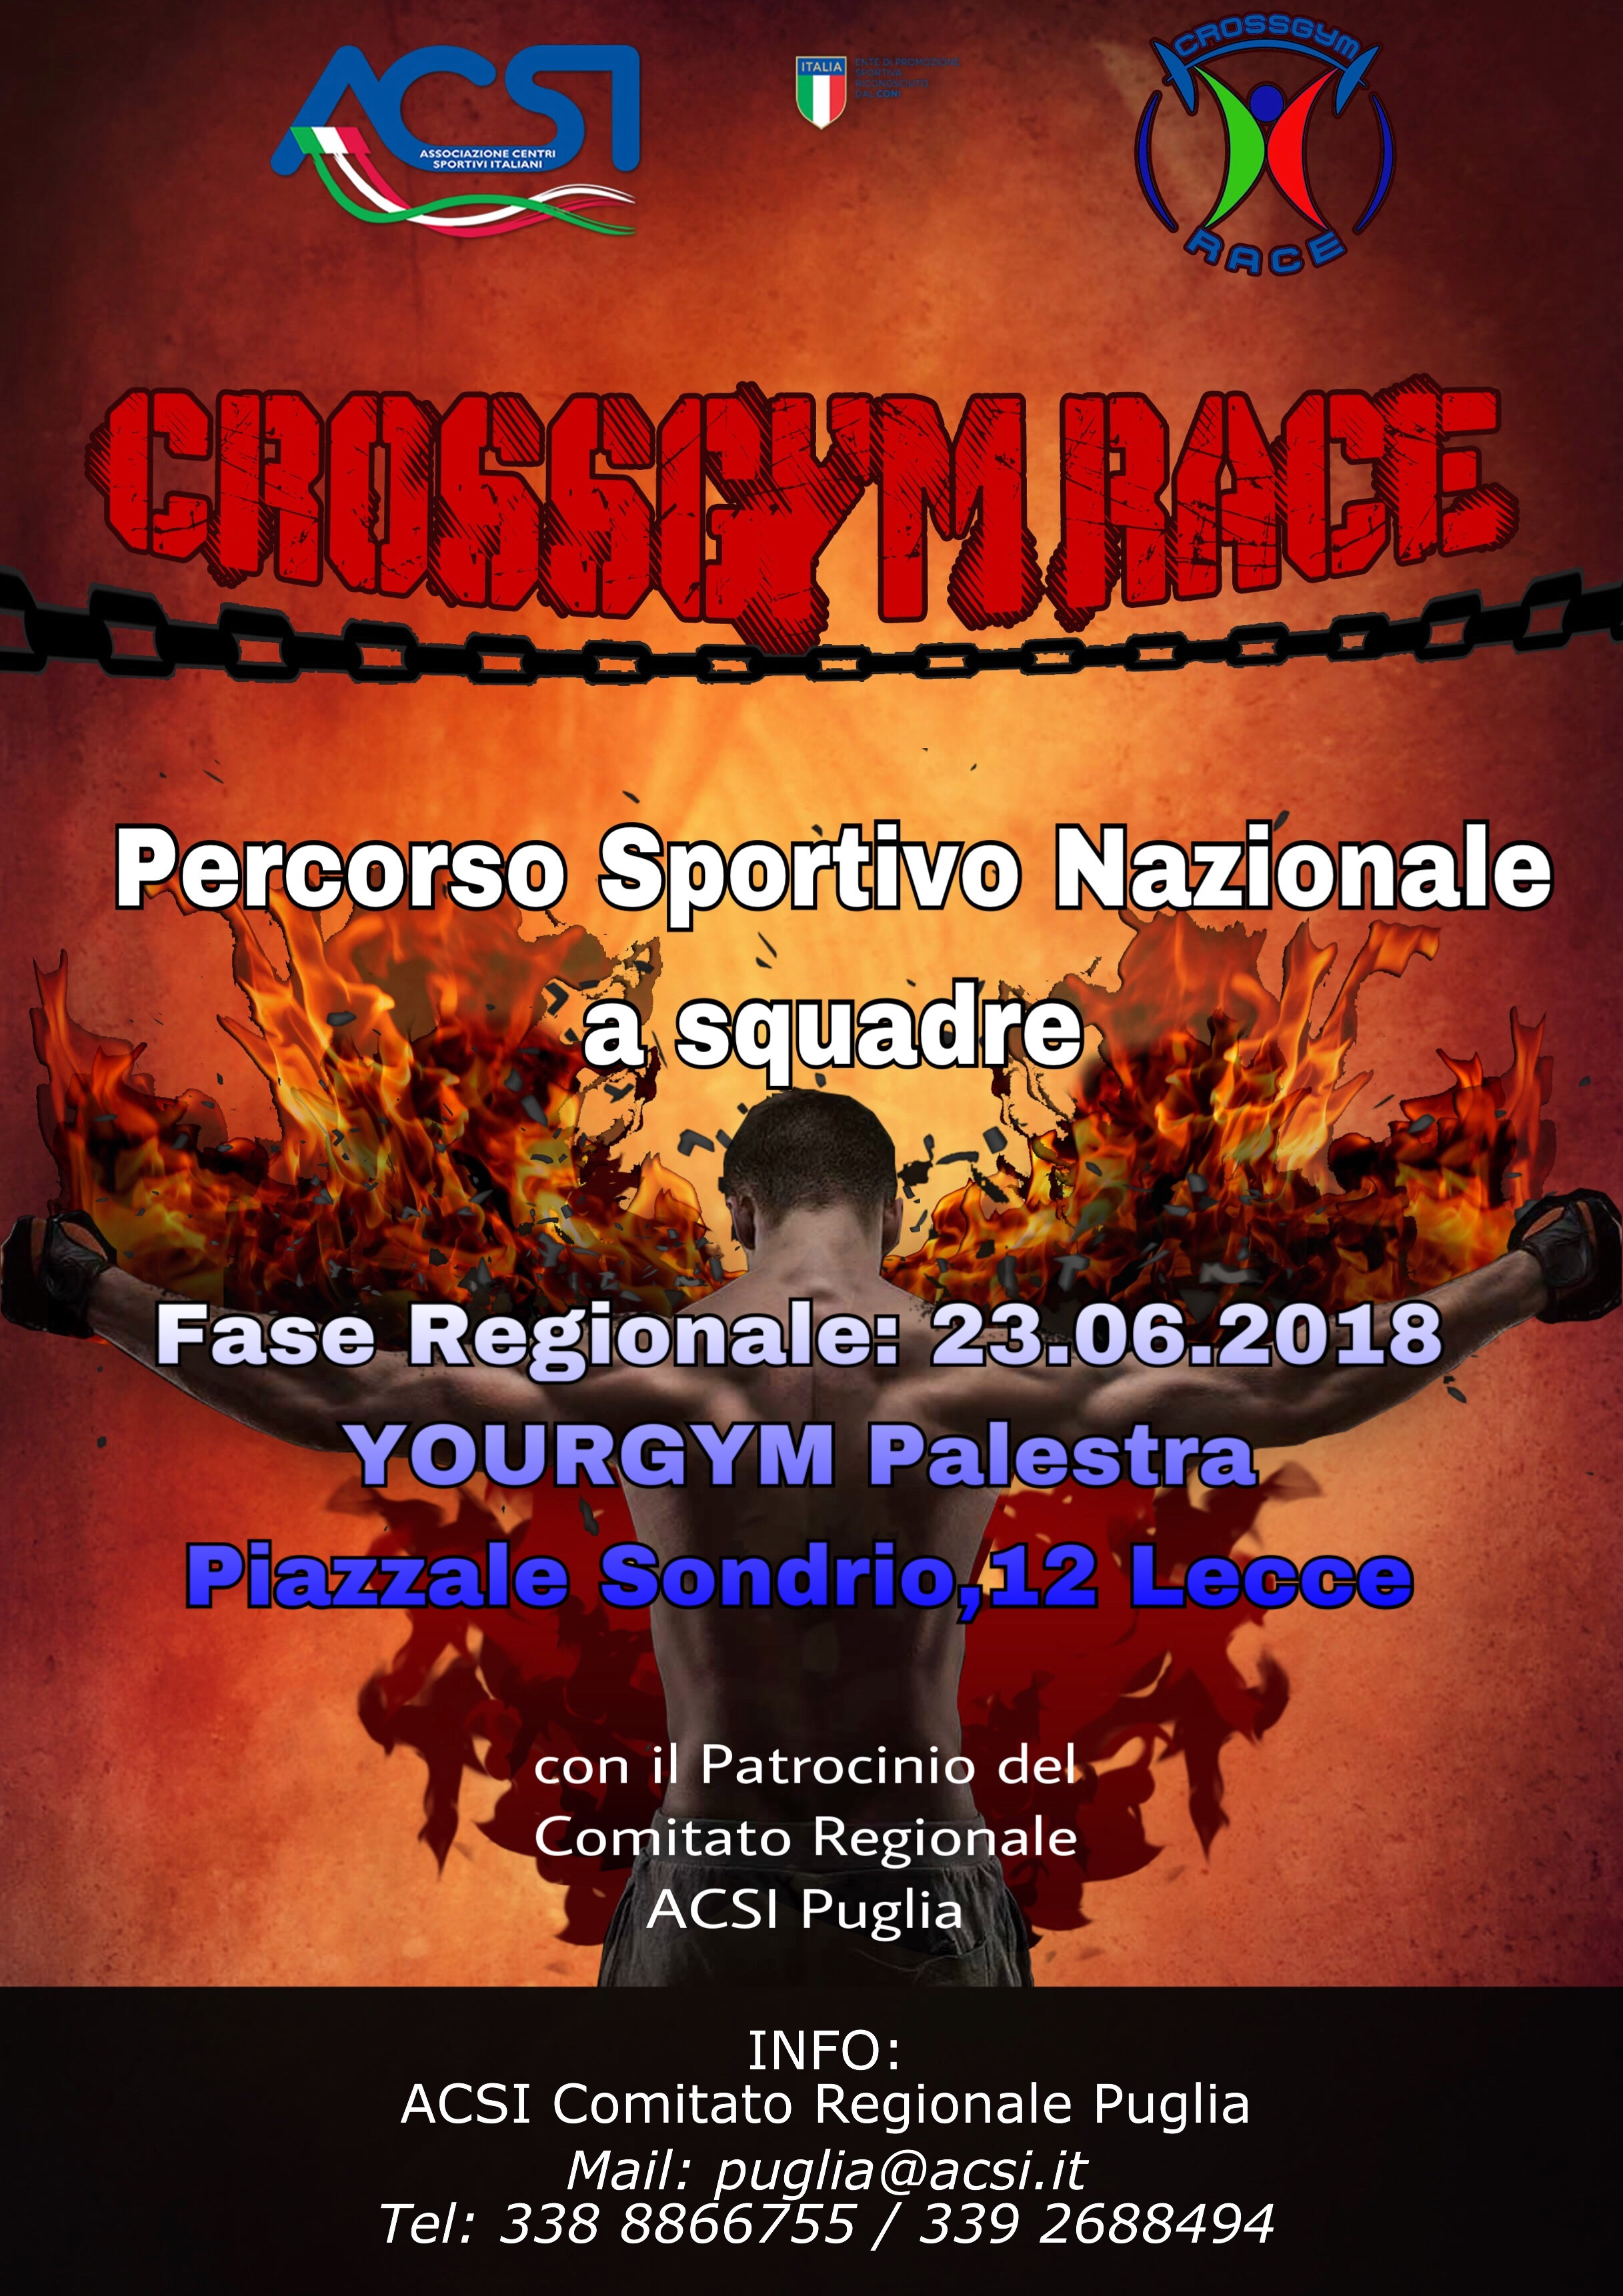 LECCE, FINALE REGIONALE DEL CROSS GYM RACE